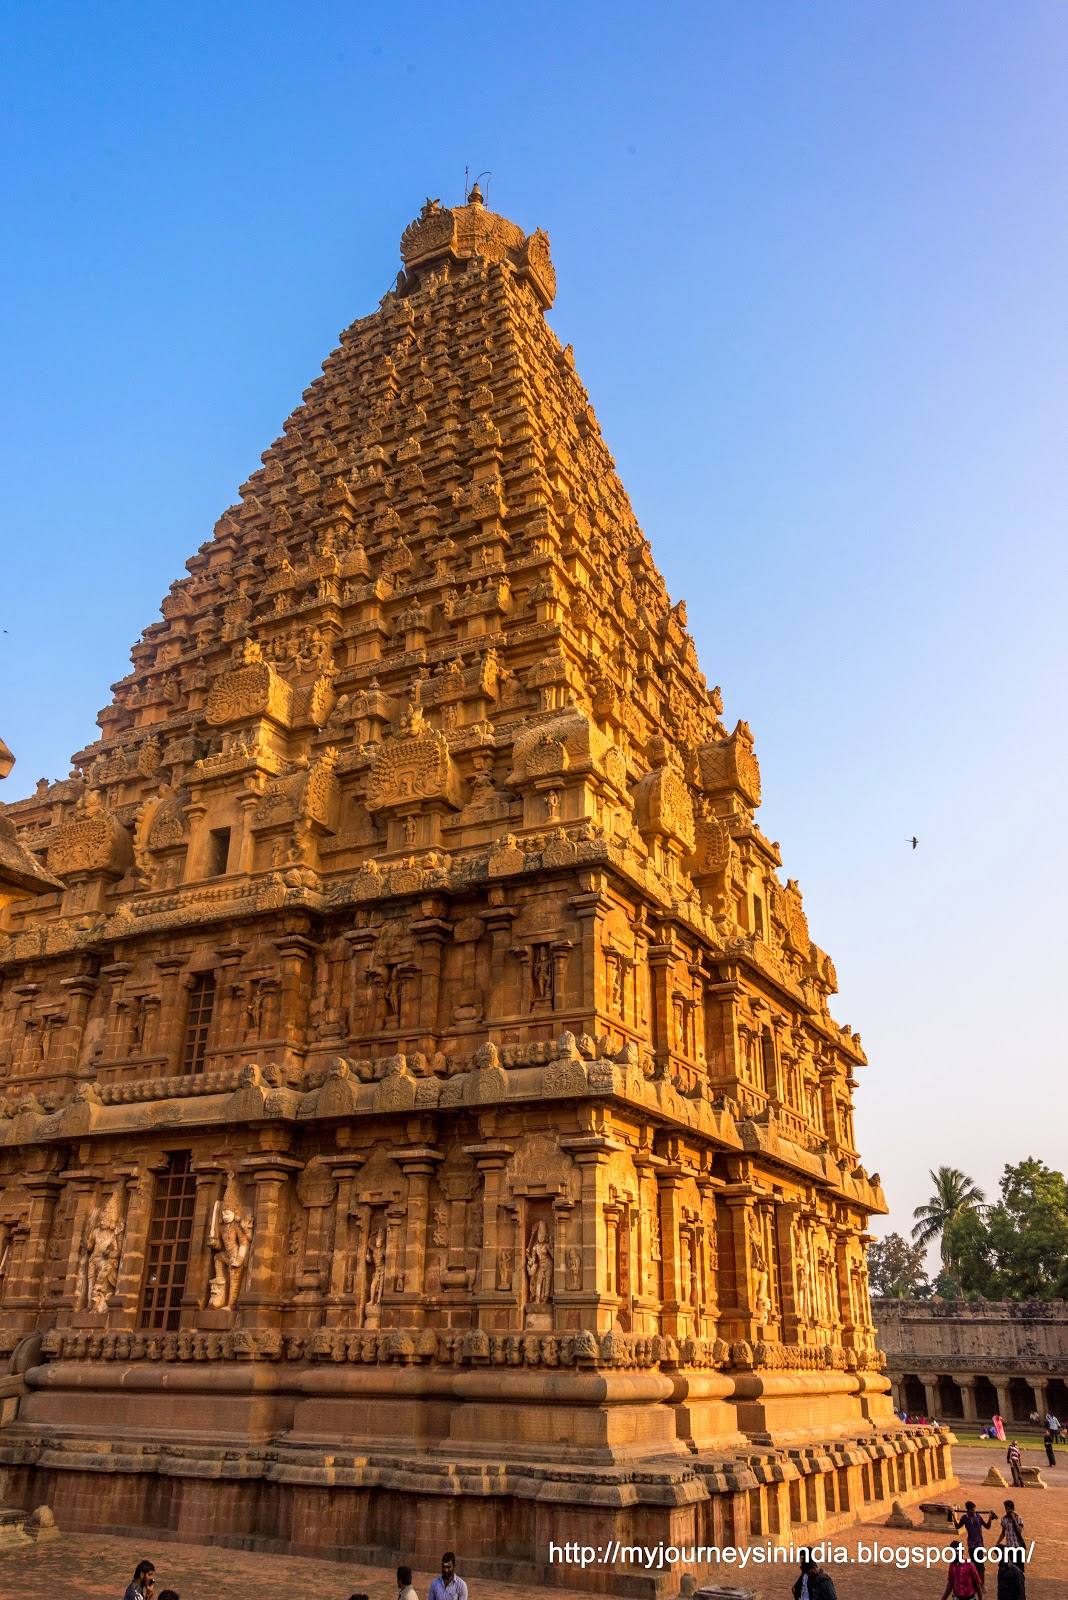 brihadeeswarar temple Brihadeeswarar temple this temple was built during the reign of king raja raja chola from the inscriptions, it is known that this temple was constructed exactly 25 years and 275 days after his ascension to the throne.